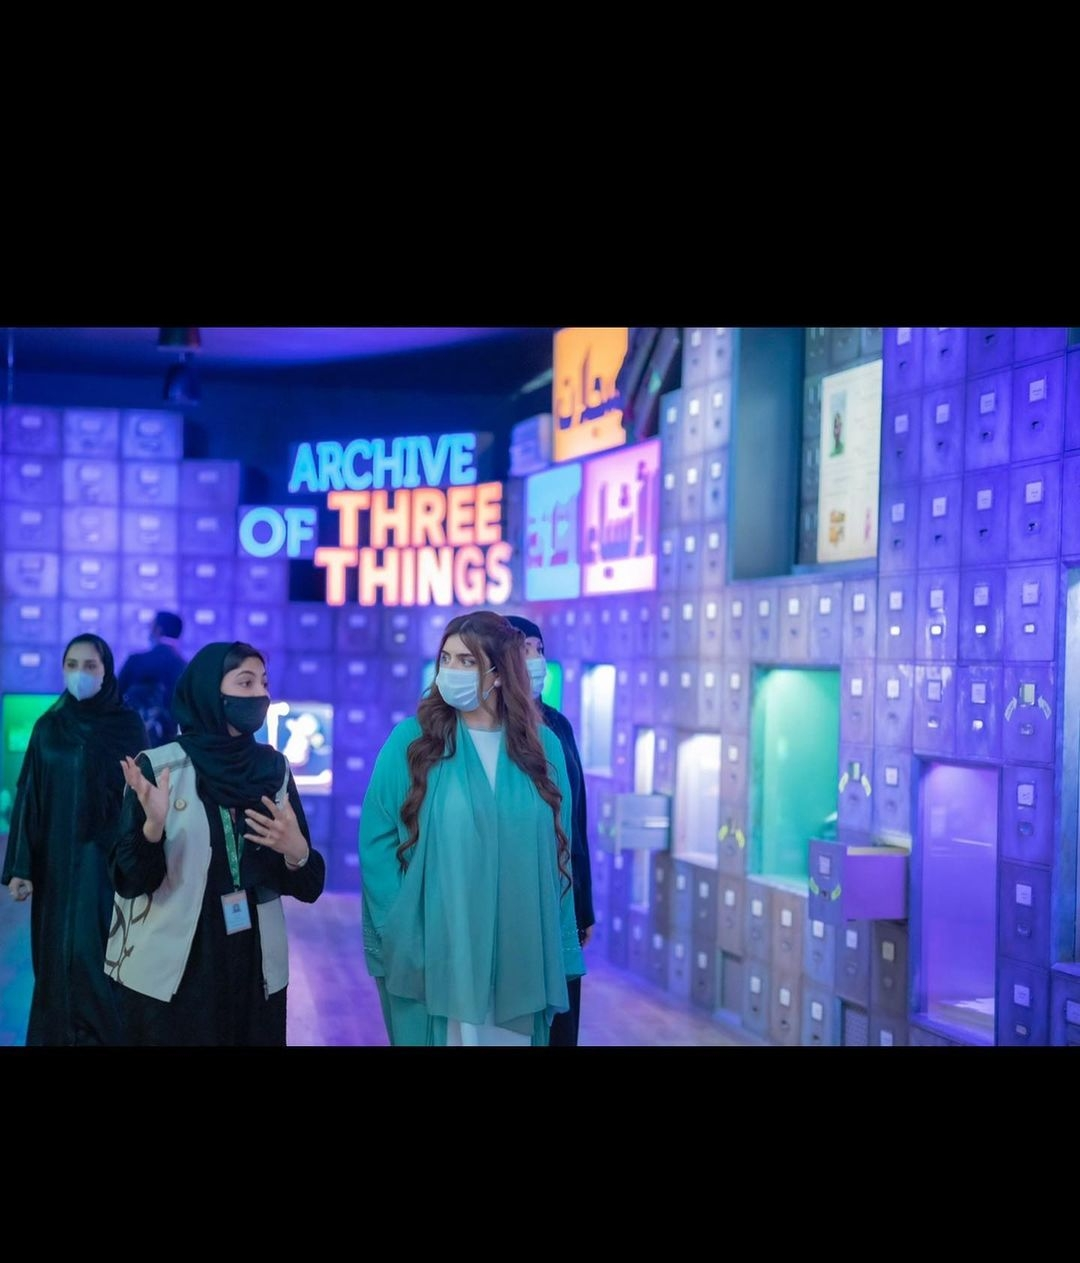 Sheikha Mahra Shares Glimpses from Her Visit to Expo 2020